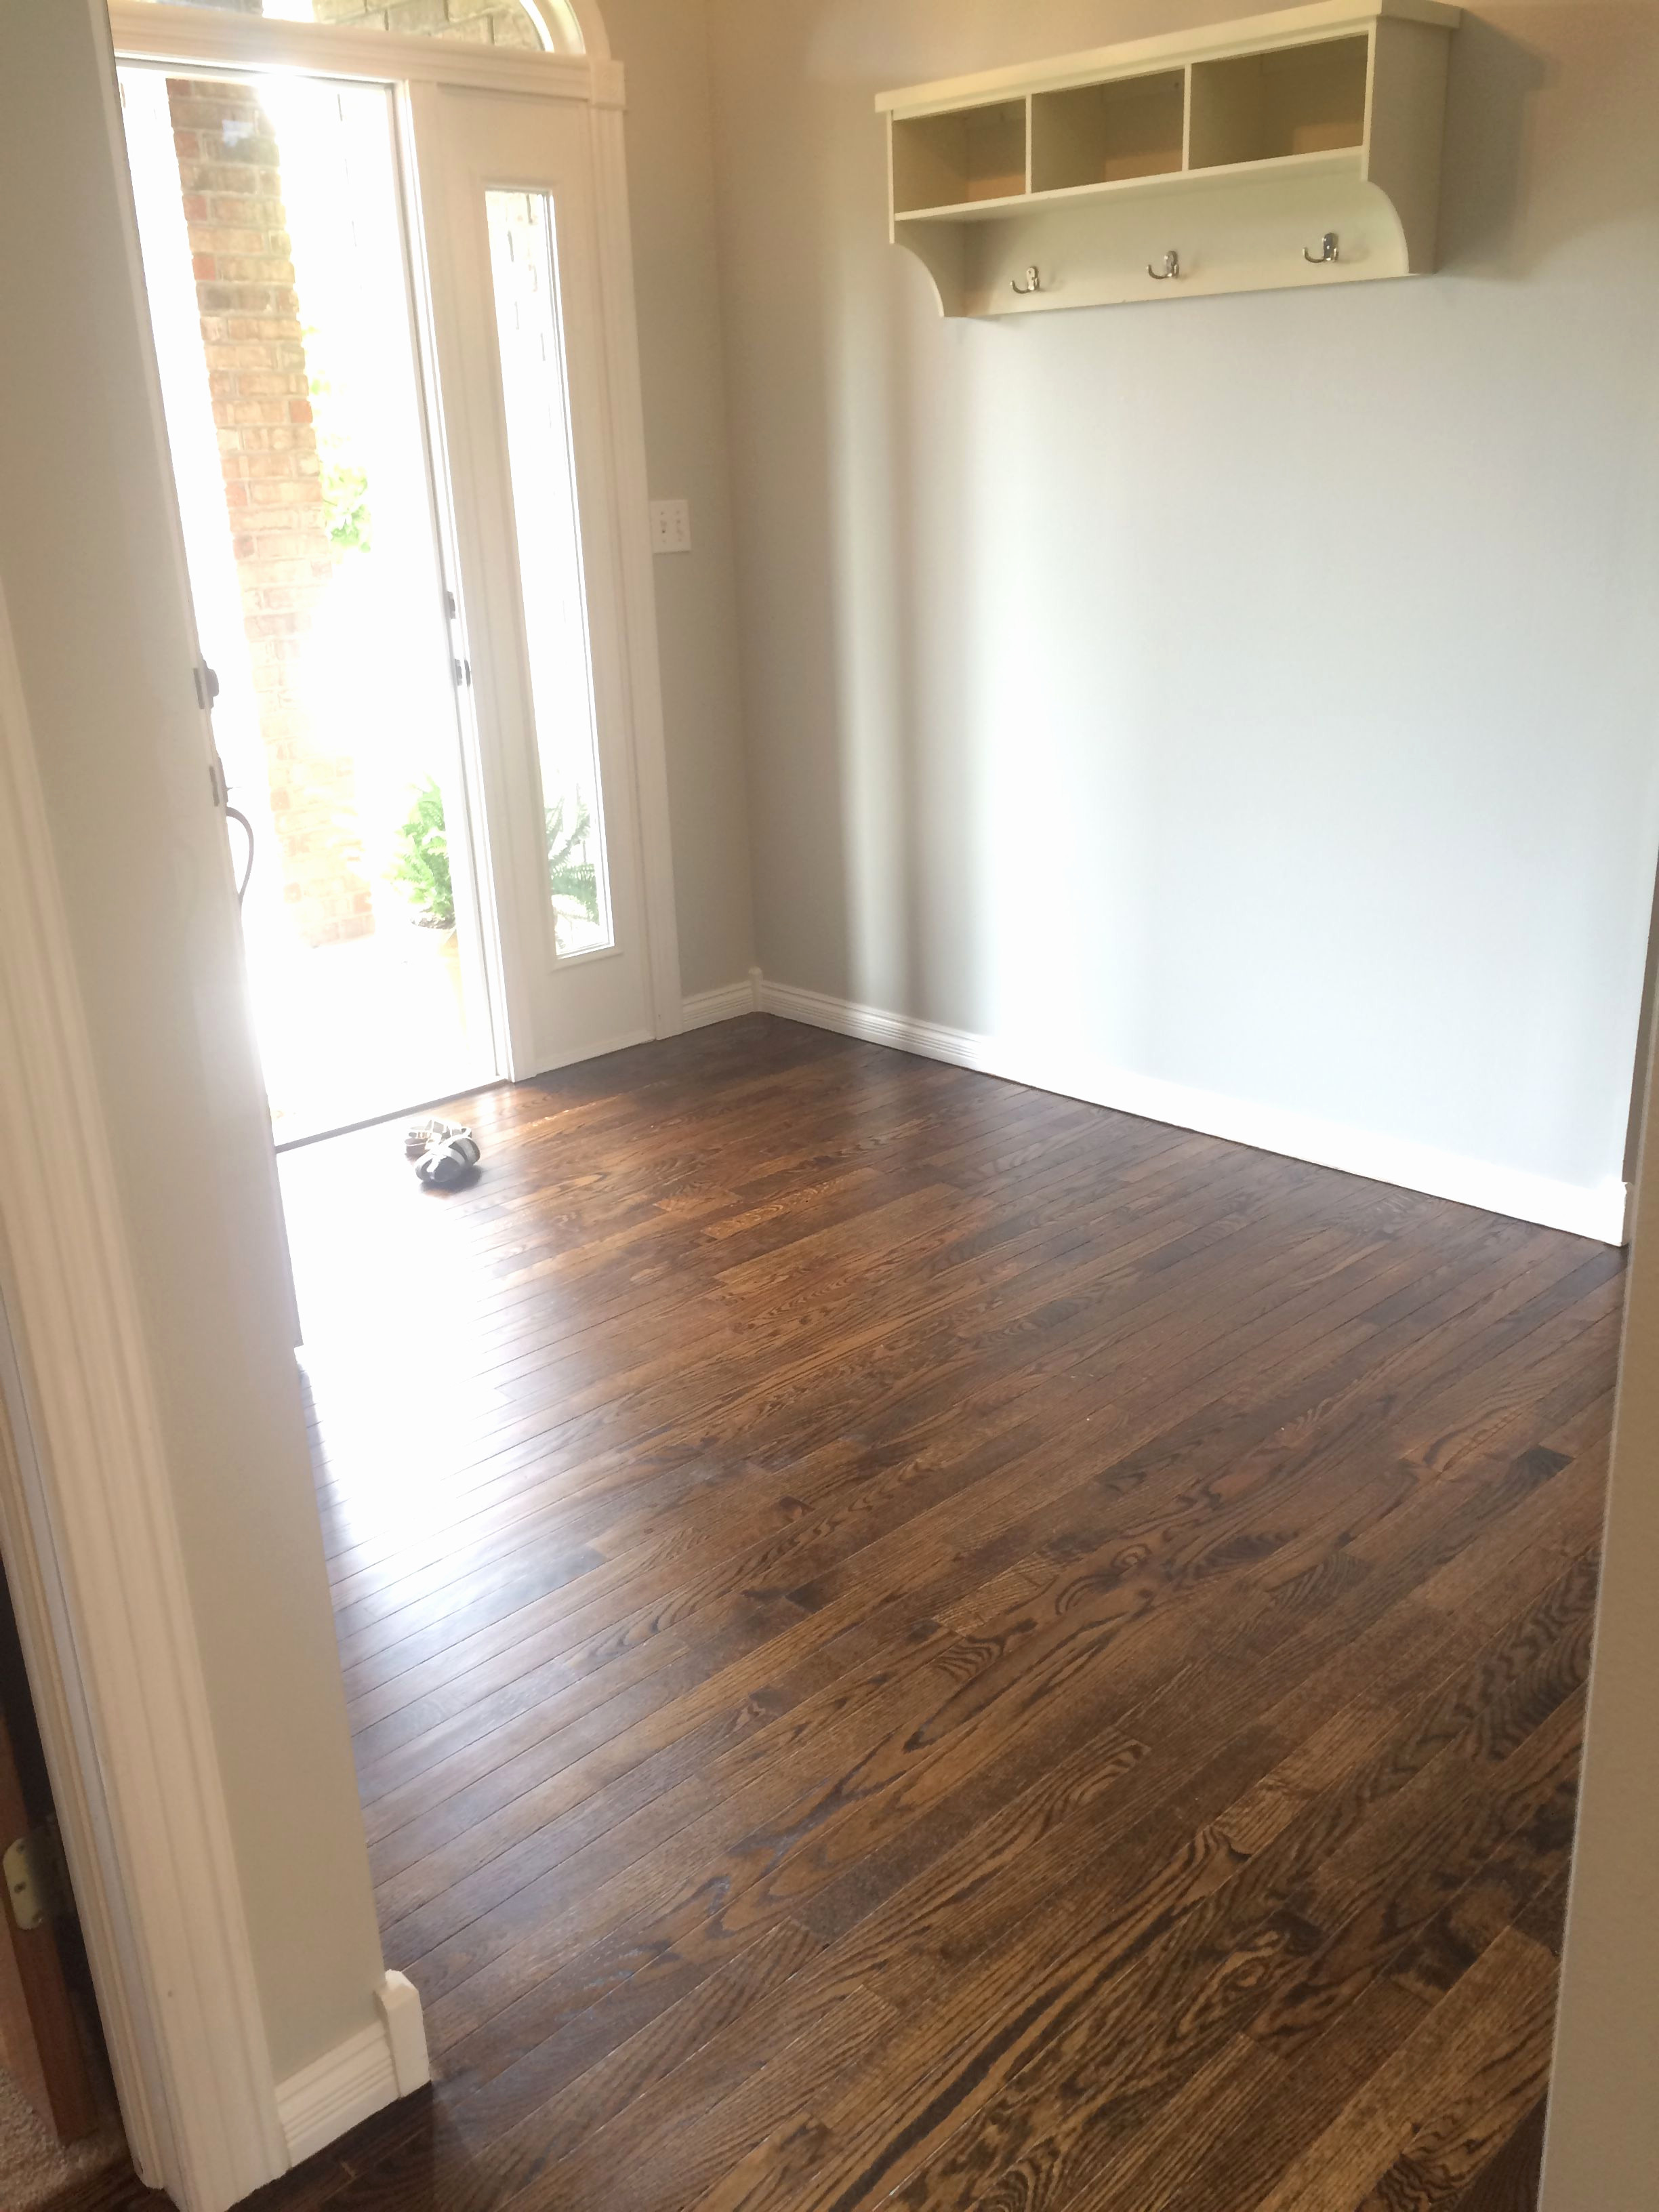 How to Refinish Hardwood Floors with Gaps Of Diy Refinish Hardwood Floors 50 Best Refinished Hardwood Floors within Diy Refinish Hardwood Floors 50 Best Refinished Hardwood Floors before and after Graphics 50